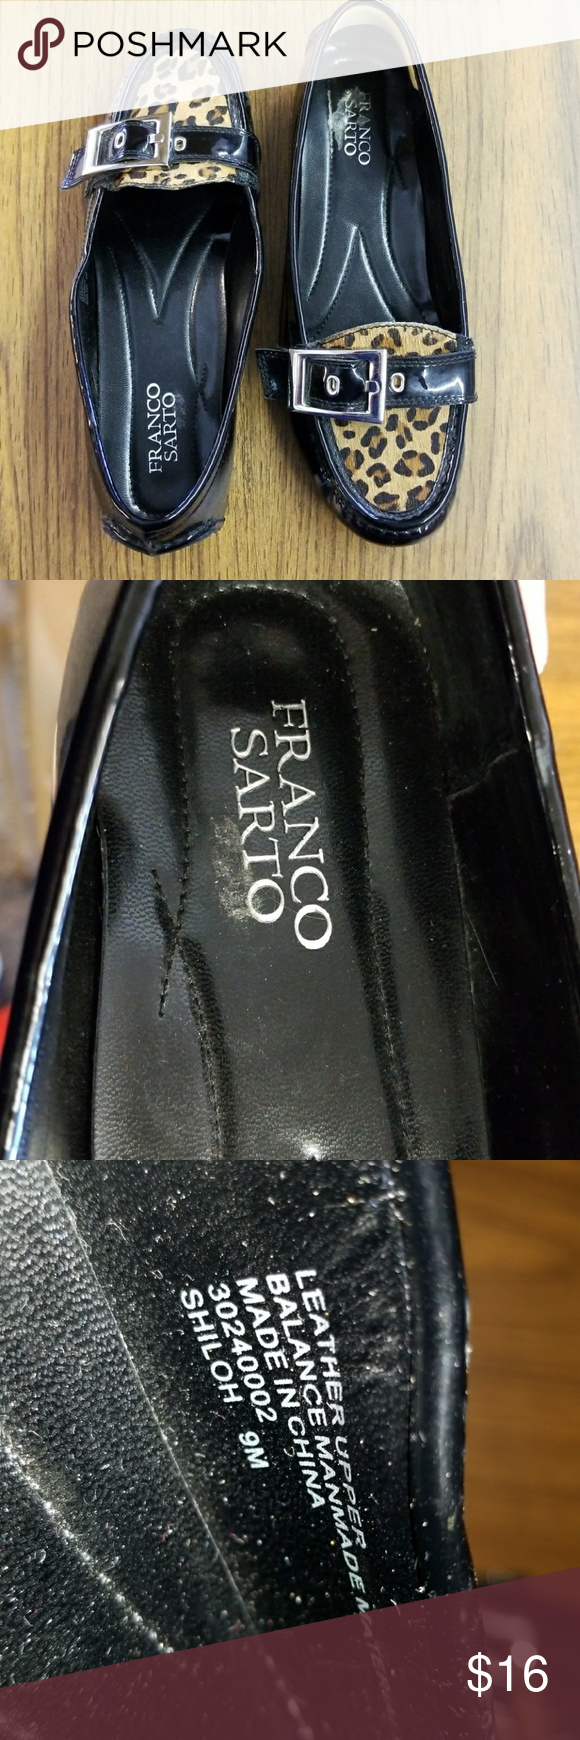 Franco Sarto Flats Franco Sarto flats size 9 Franco Sarto Shoes Flats & Loafers